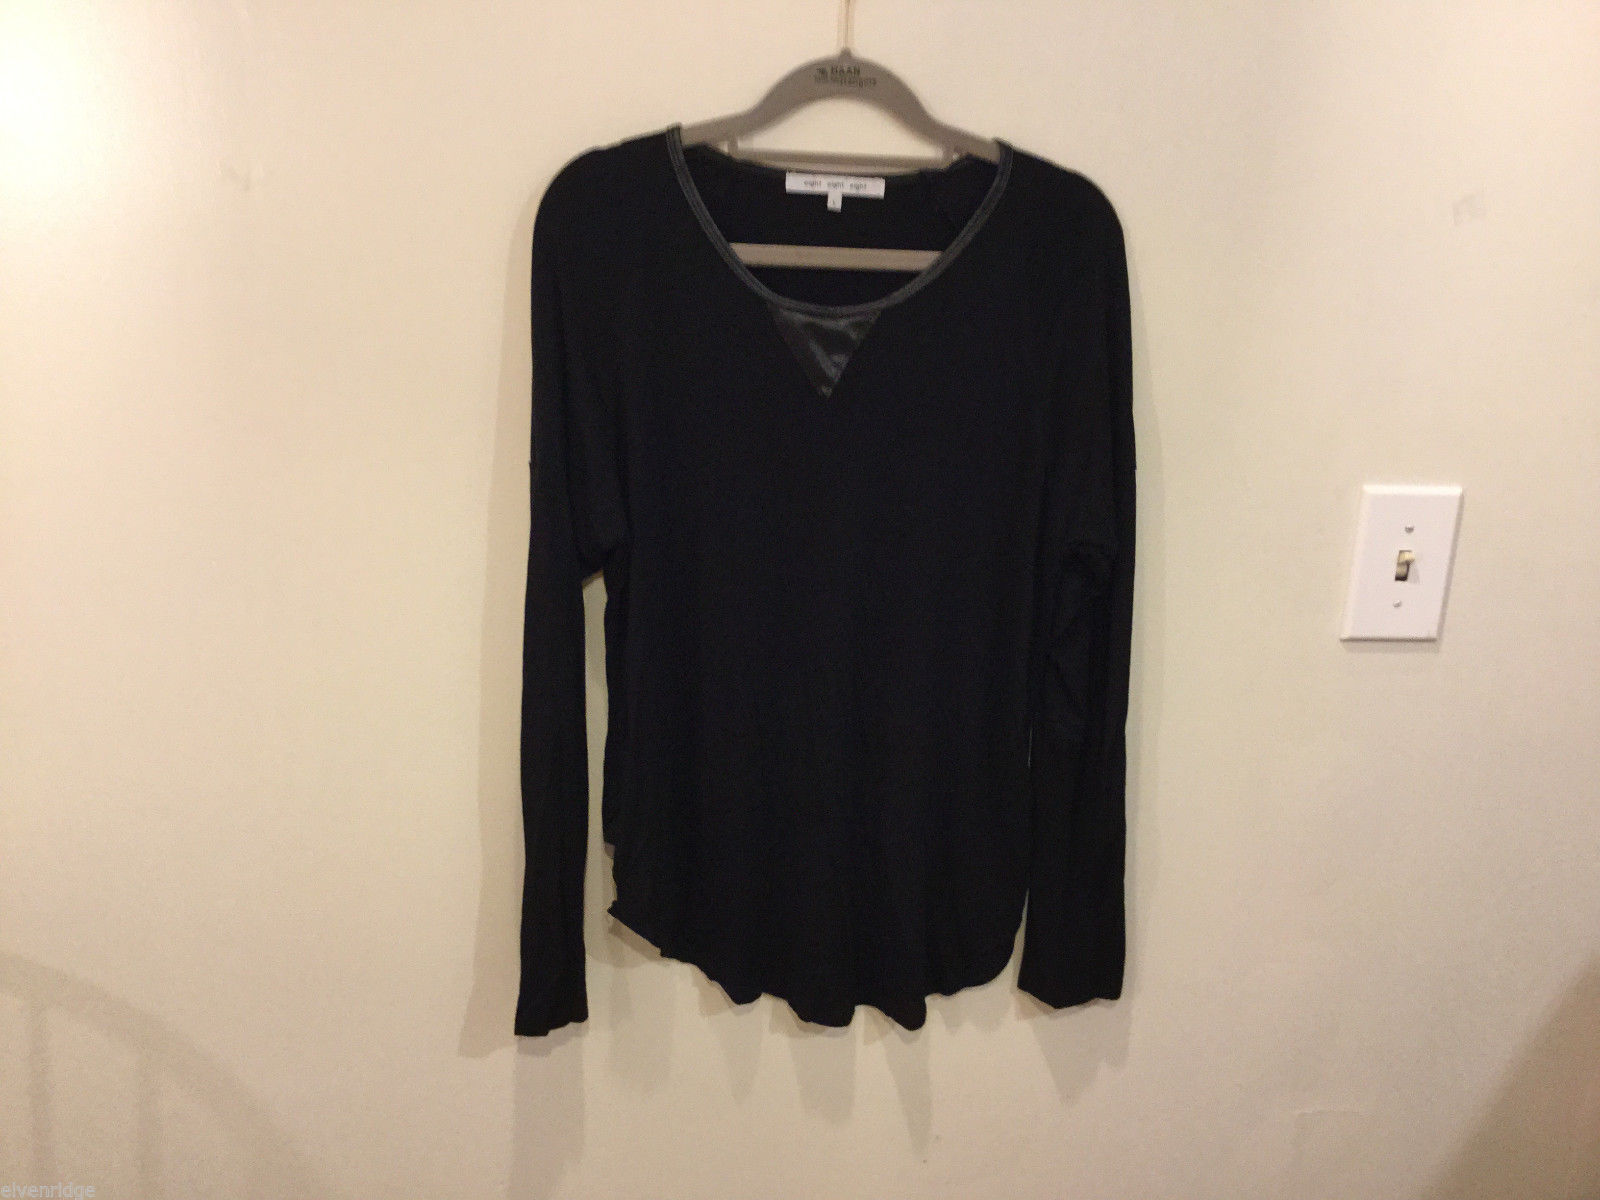 Eight Black Long Sleeve Scoop Neck Classic T-shirt faux leather trim, Size L